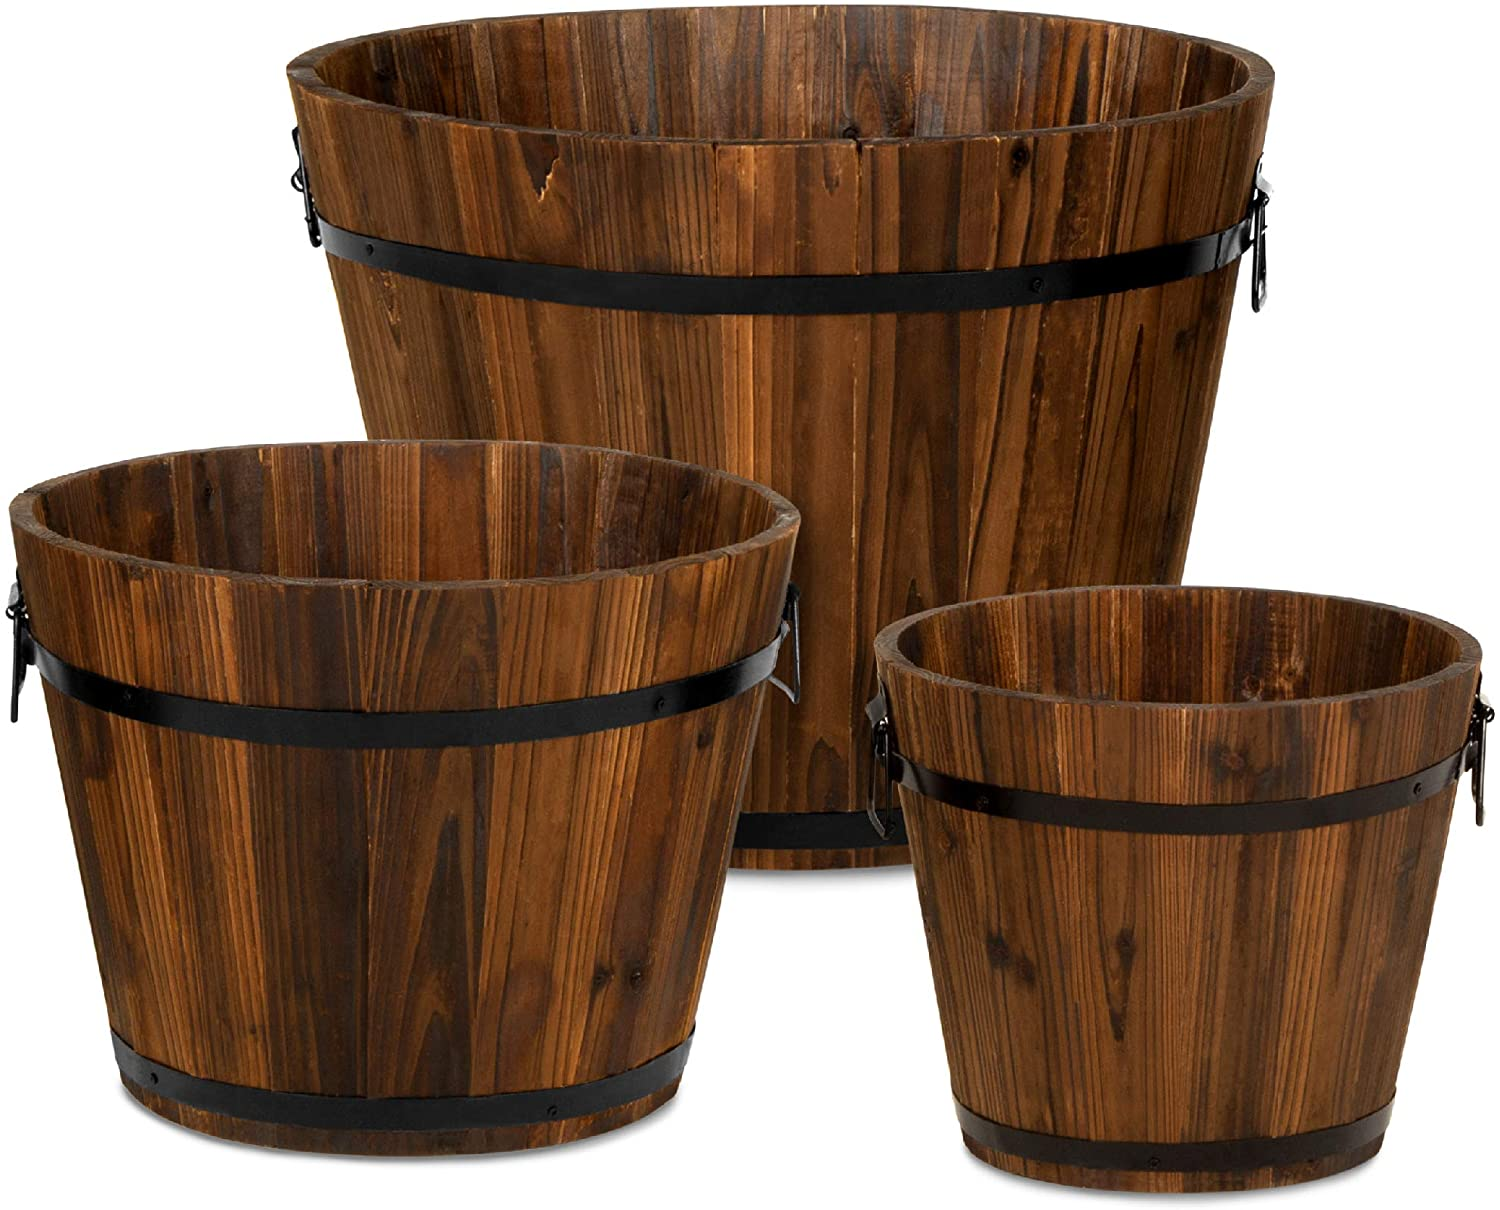 Best Choice Products Set Of 3 Wooden Bucket Barrel Garden Planters Set Rustic Decorative Flower Beds For Plants Herbs Veggies W Drainage Holes Multiple Sizes Indoor Outdoor Use Kitchen Dining